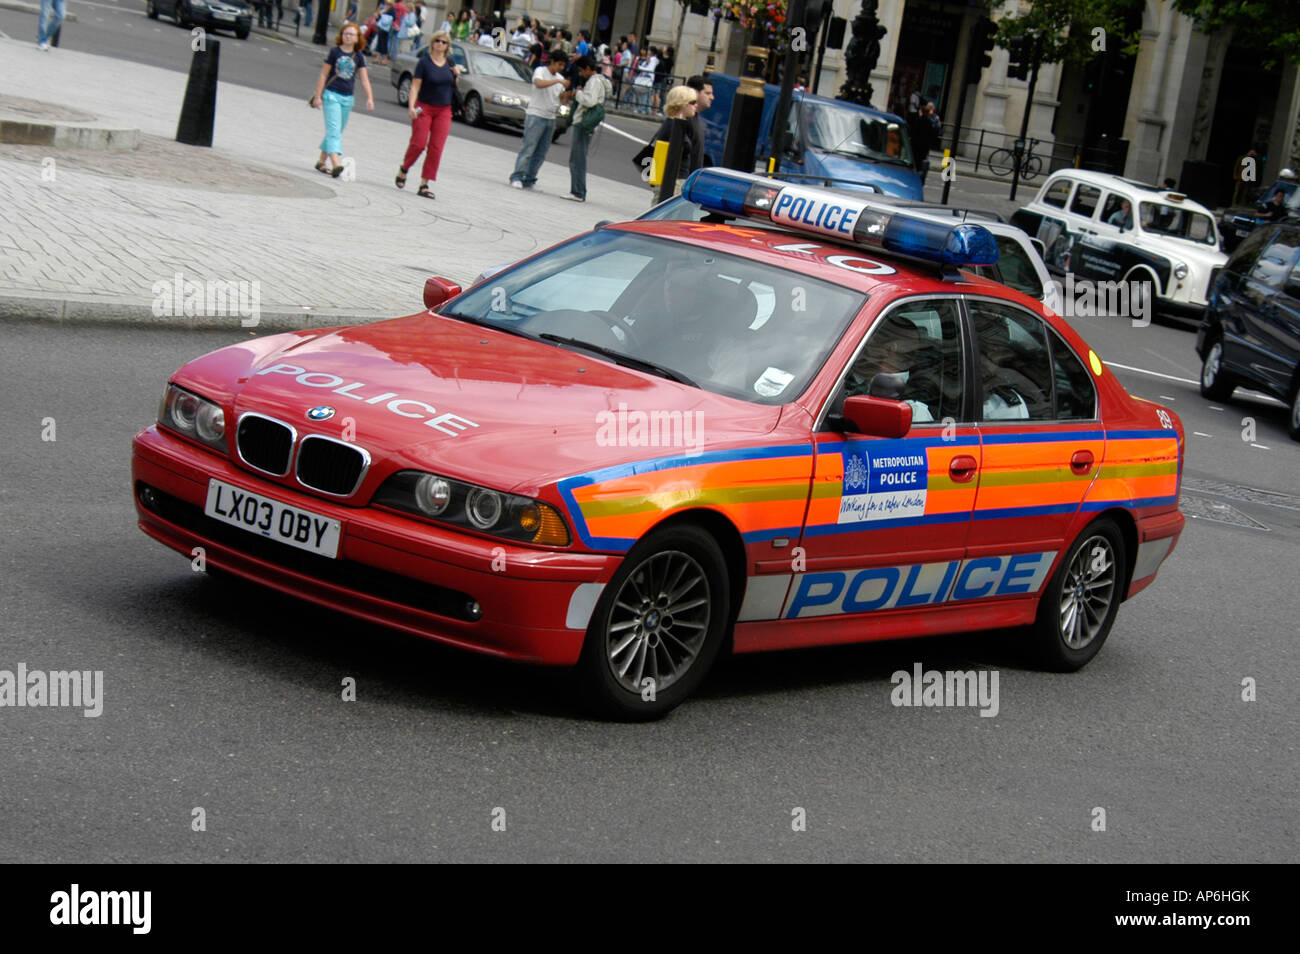 Red bmw police car driving through the city of london england stock image